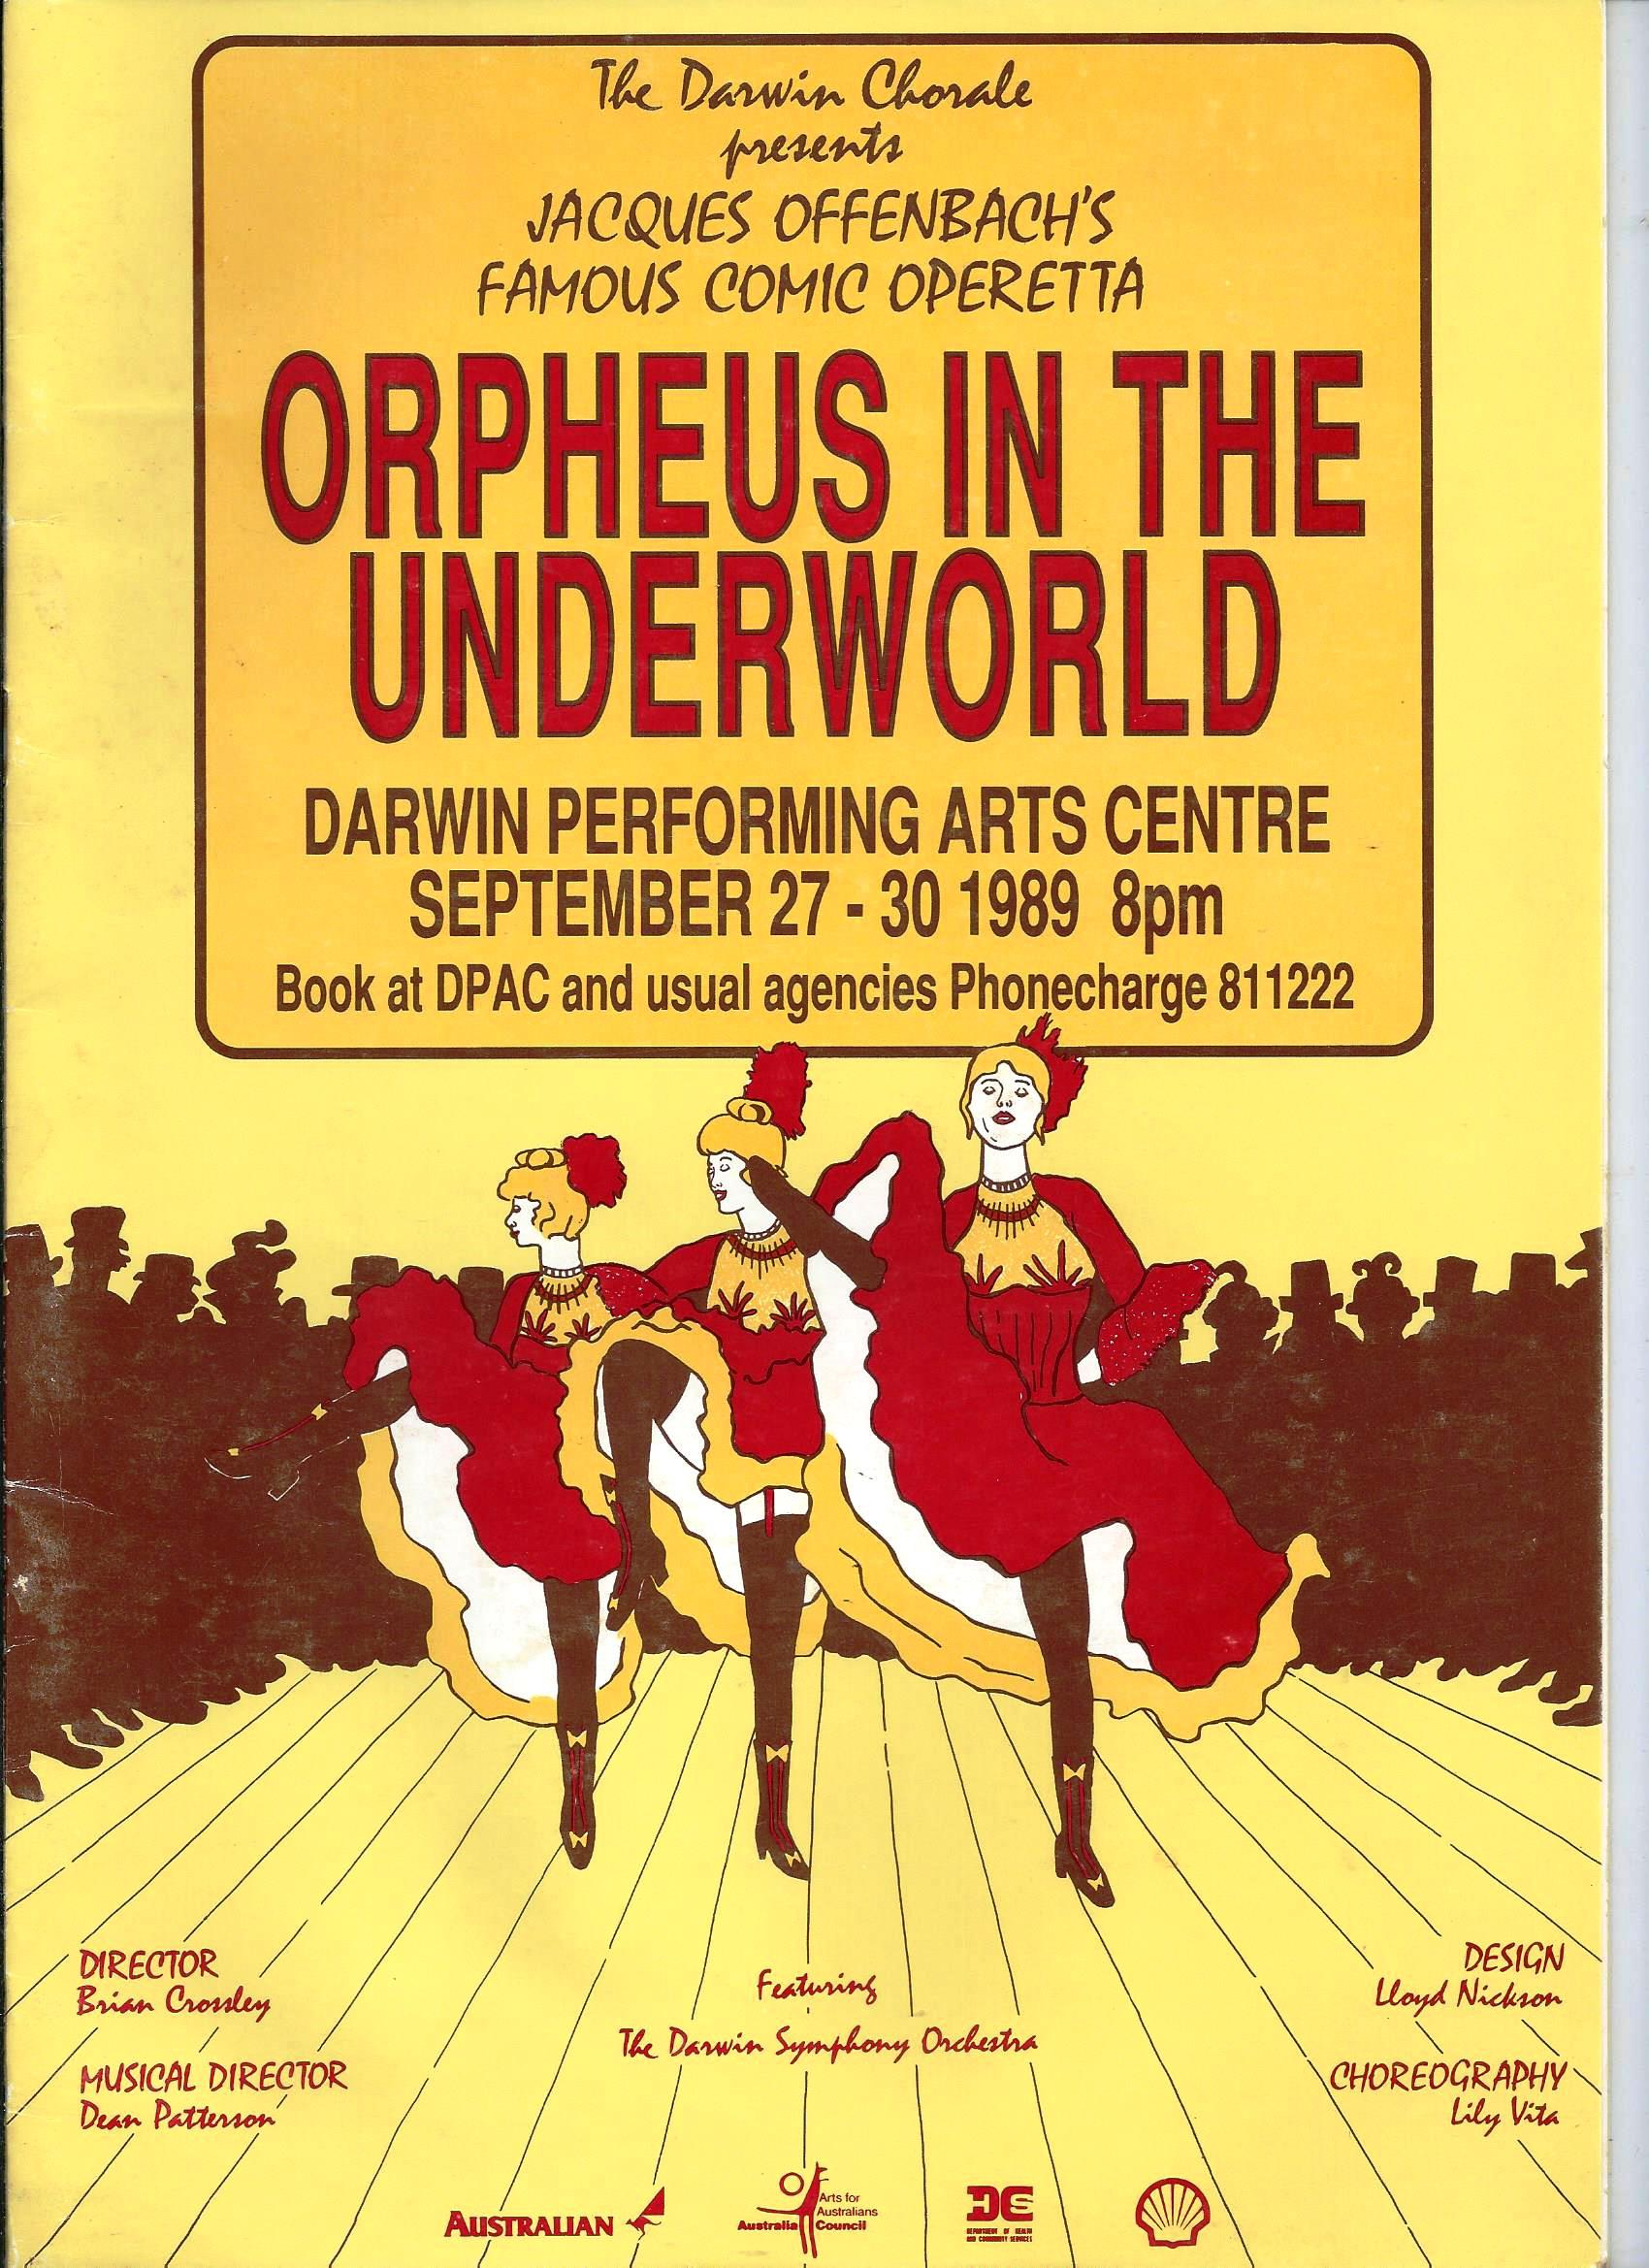 Orpheus in the Underworld 1989